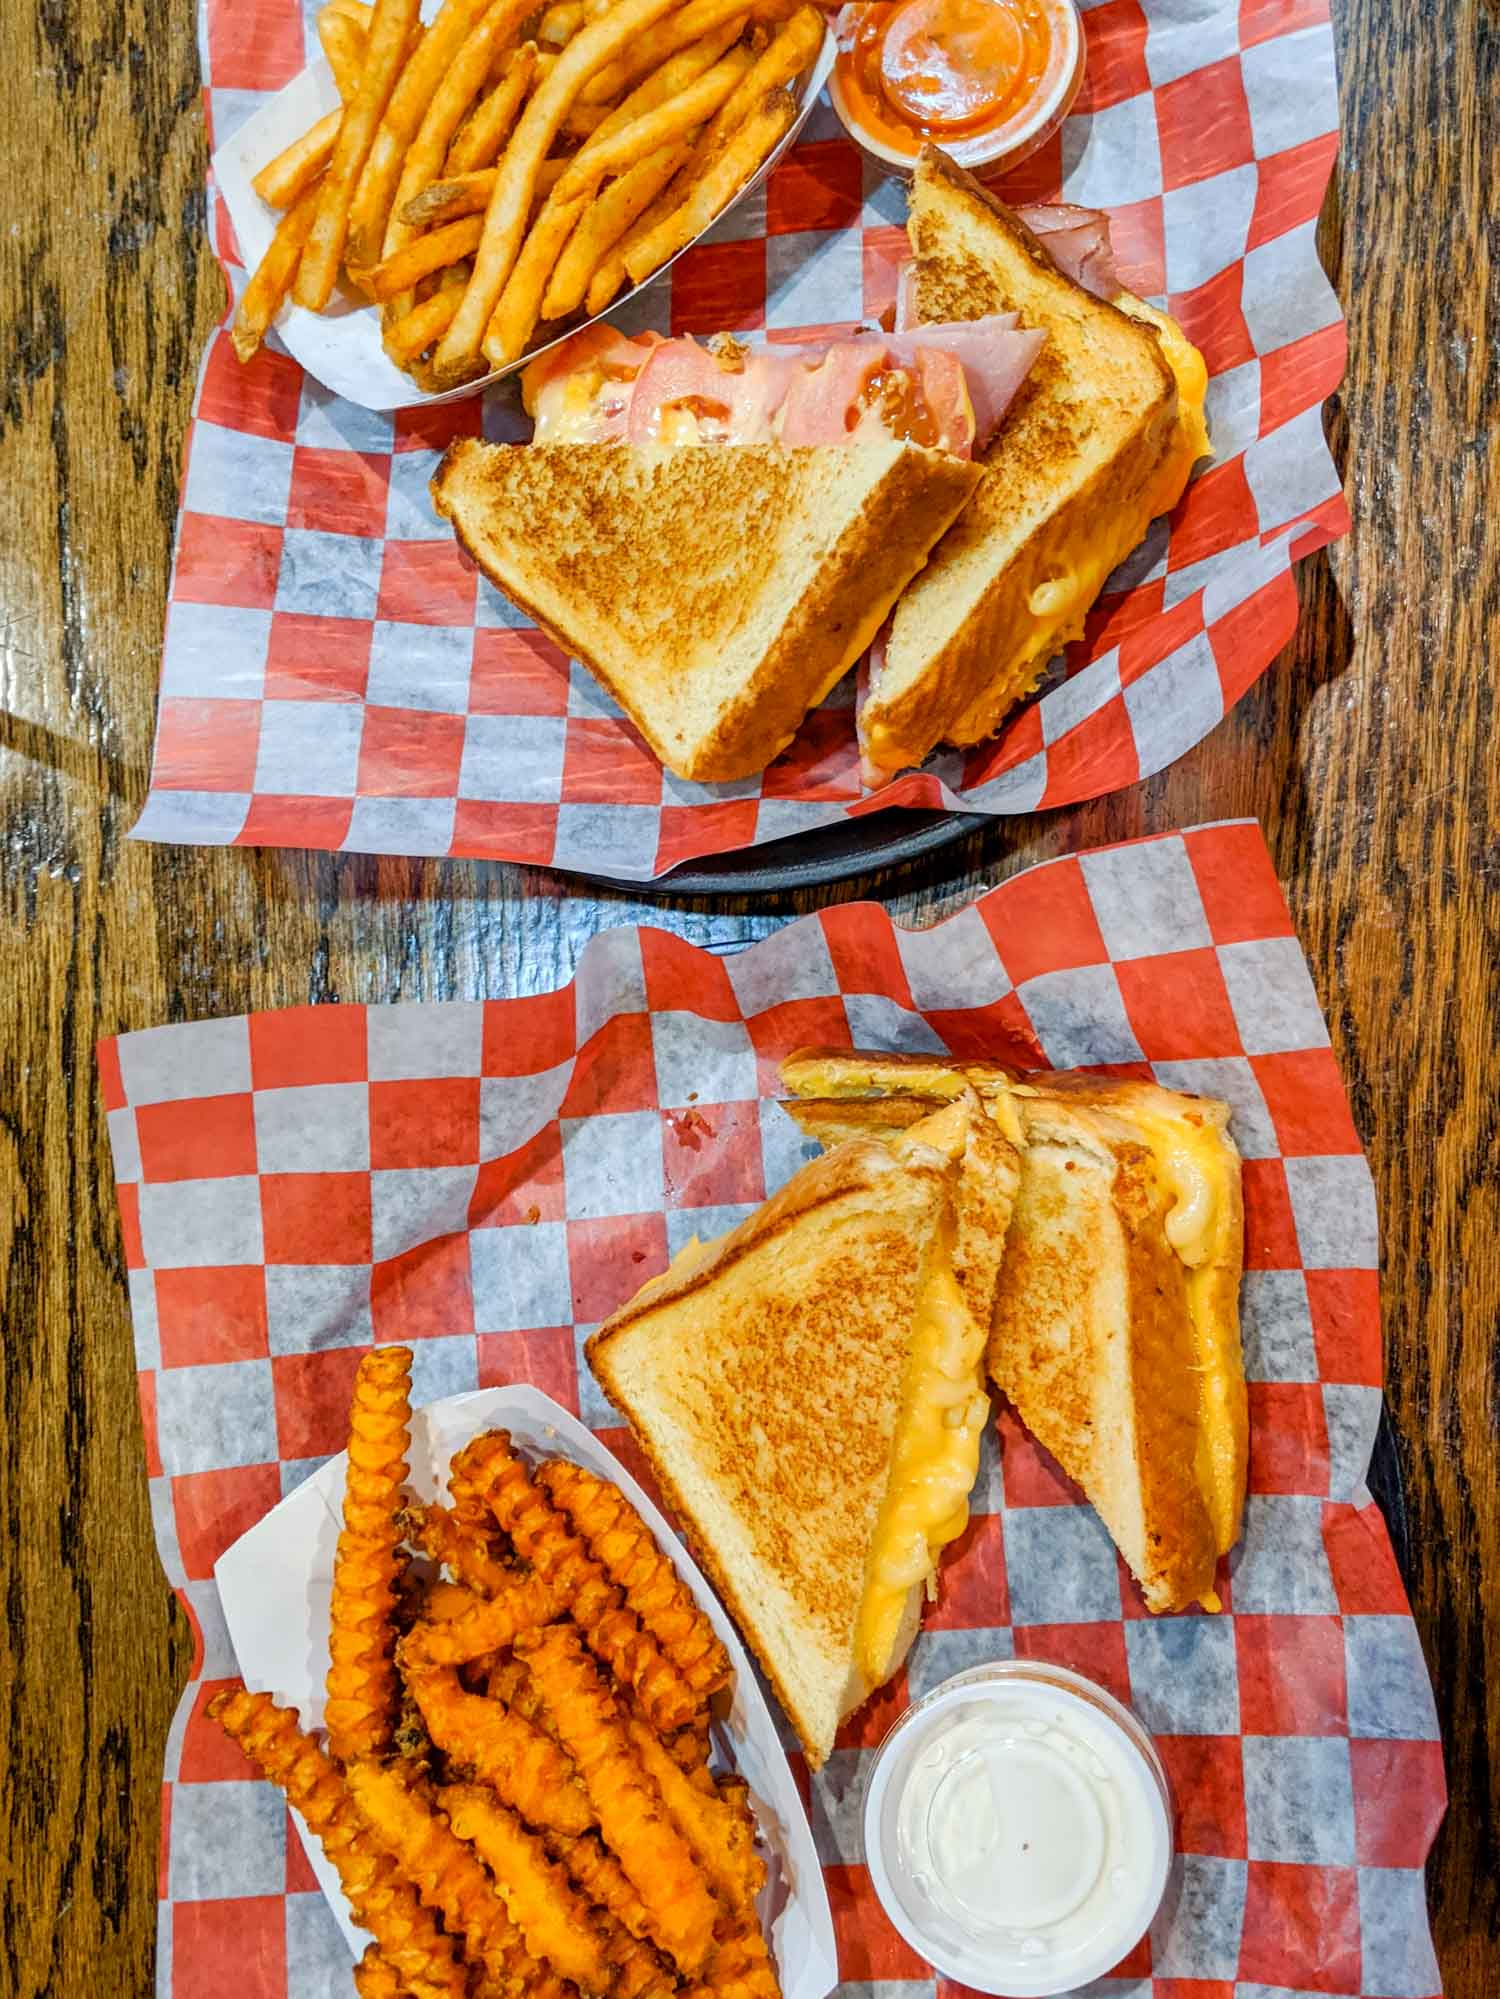 Cheesies restaurant in Chicago has grilled cheese sandwiches and fries.